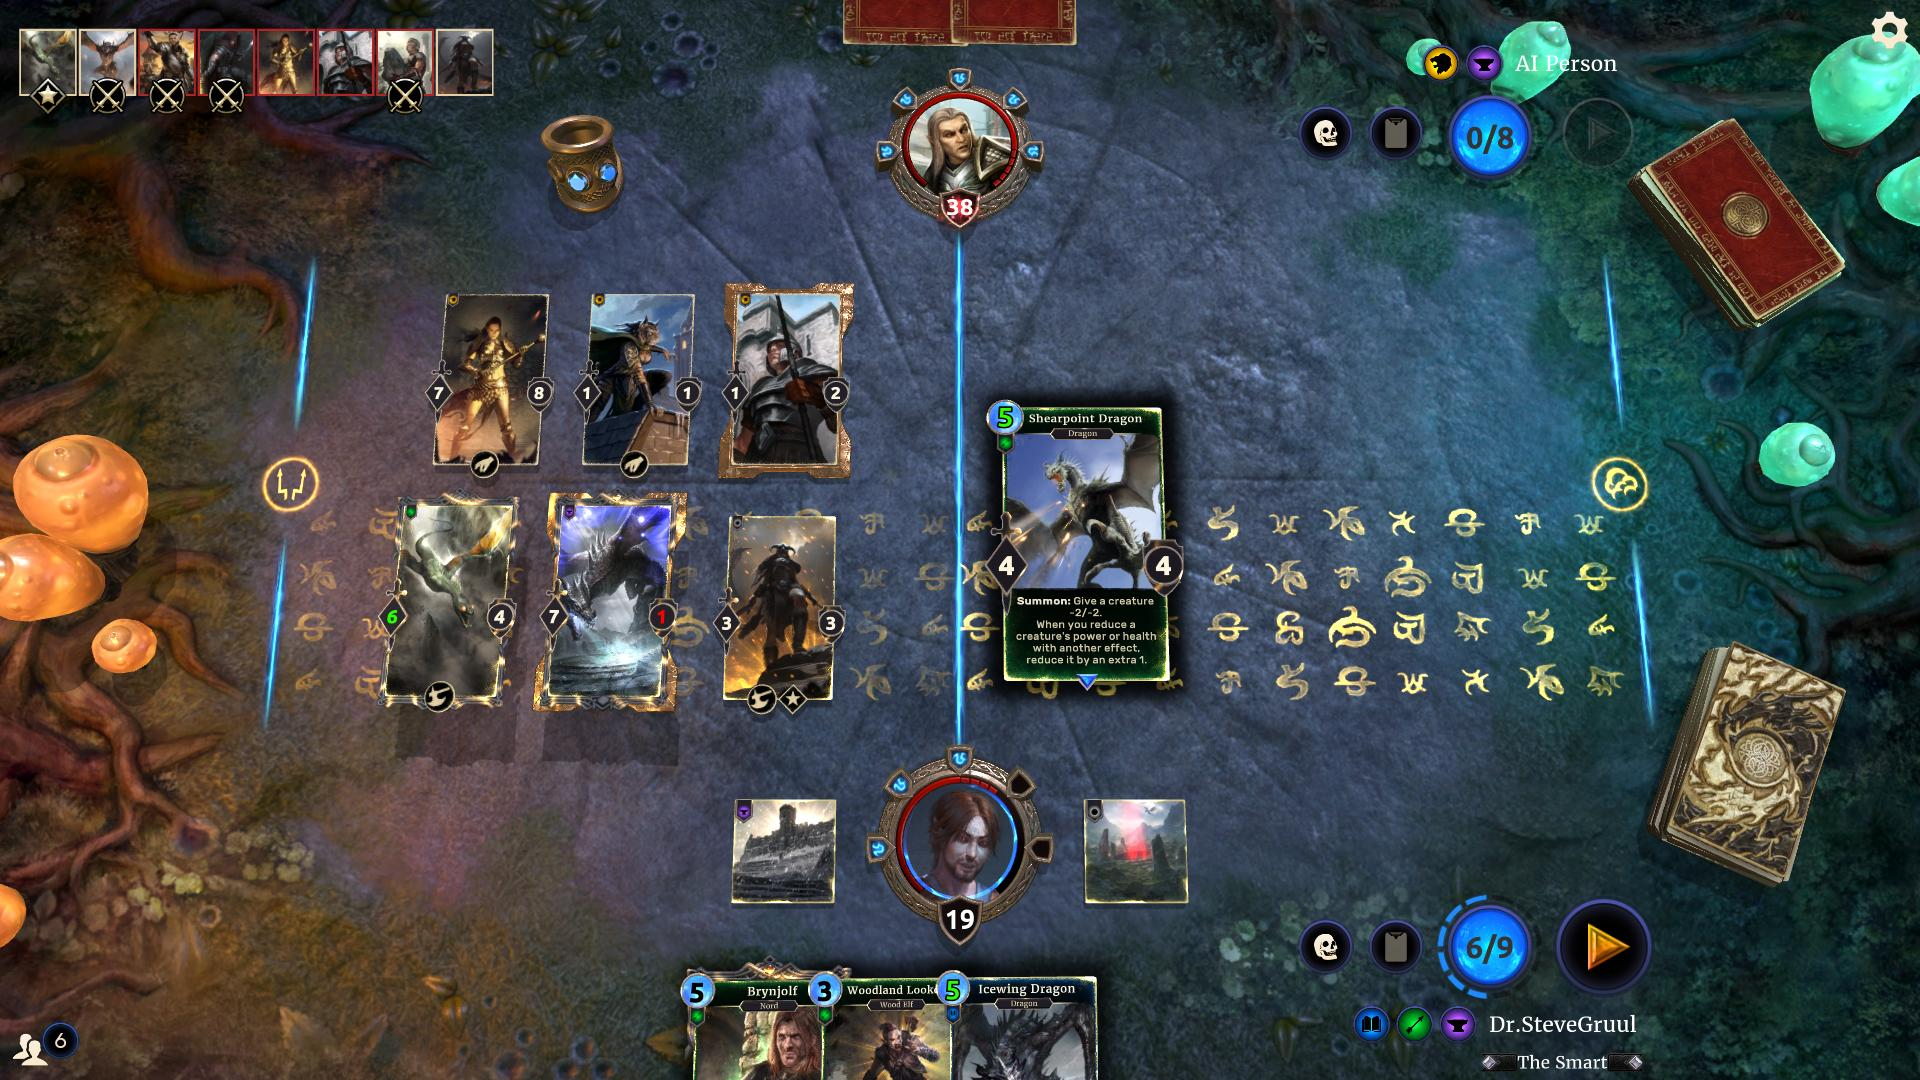 The Elder Scrolls: Legends Gameplay Screenshot 3